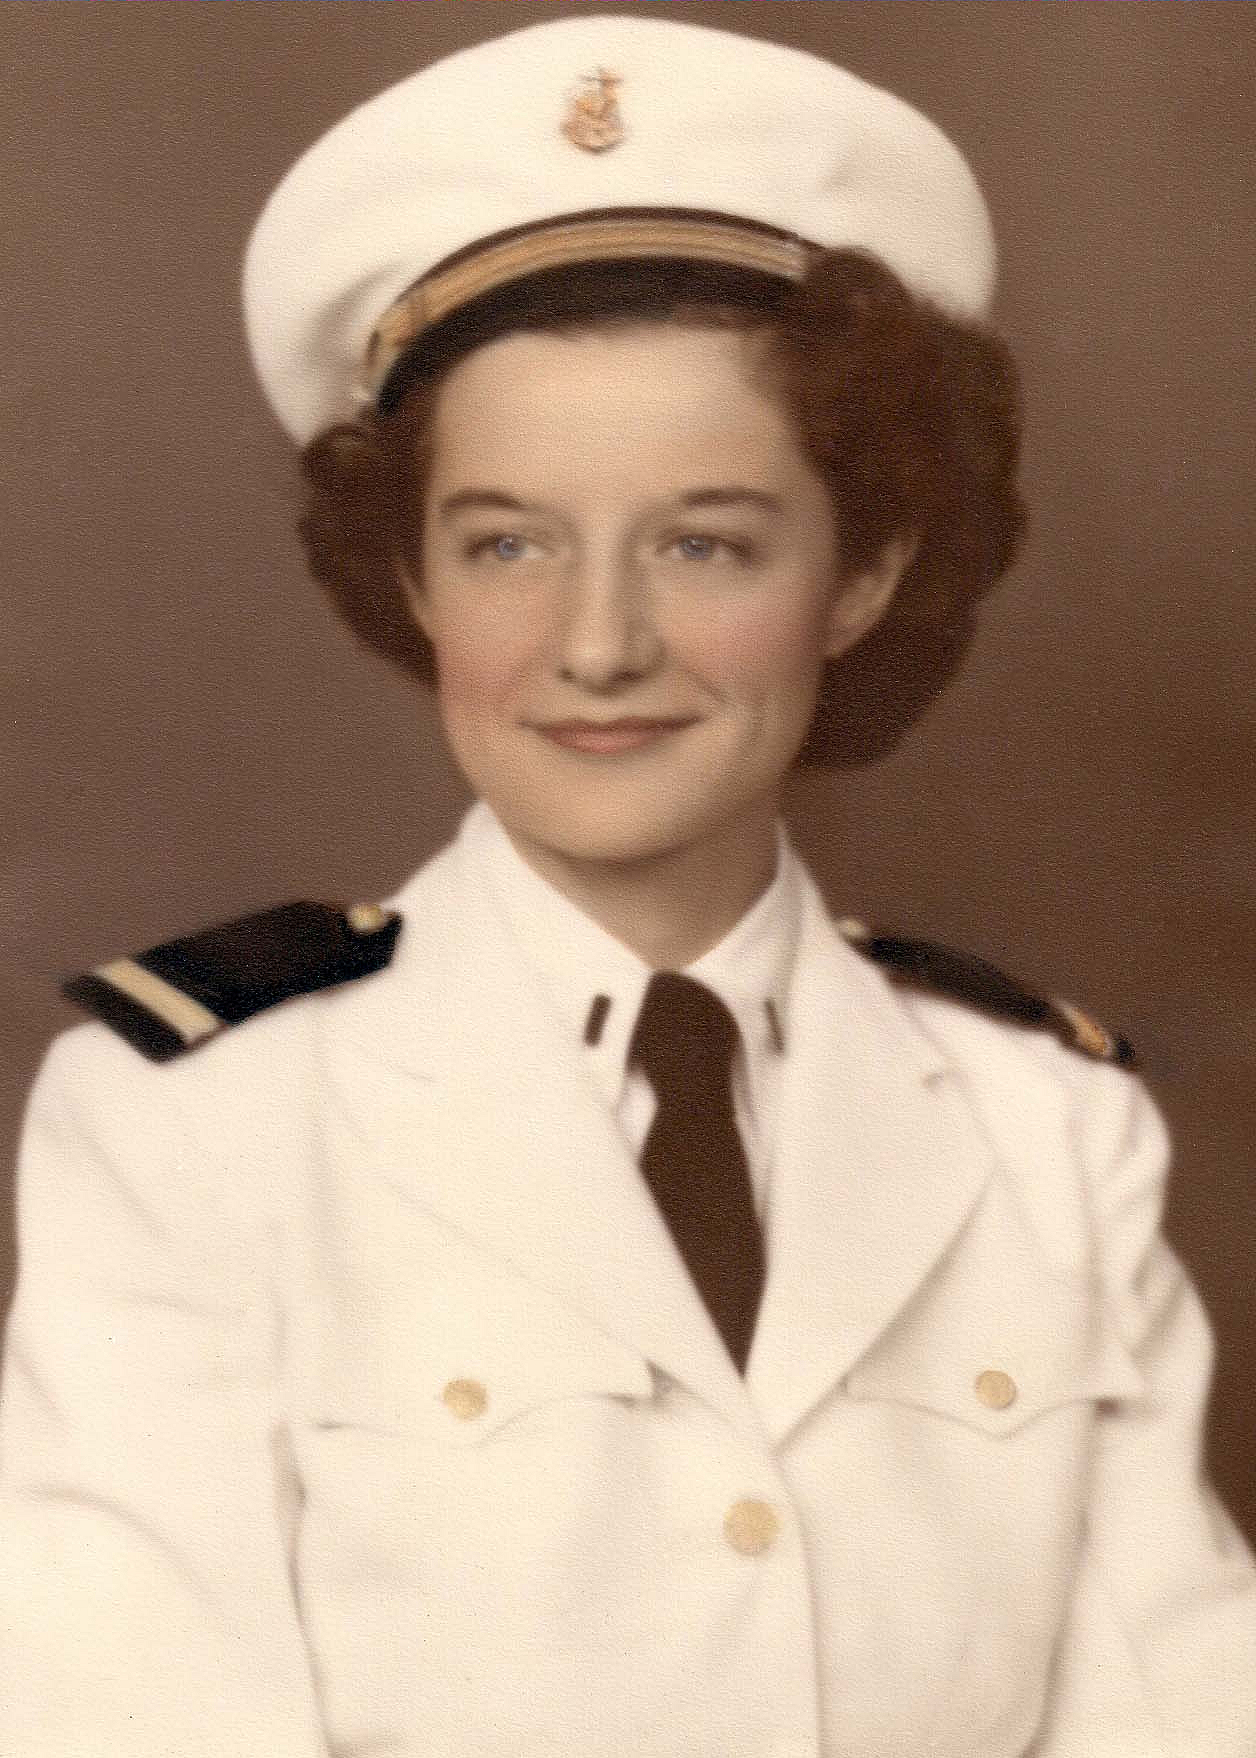 Julia Anna Muraresku of Navy Nurse Corps